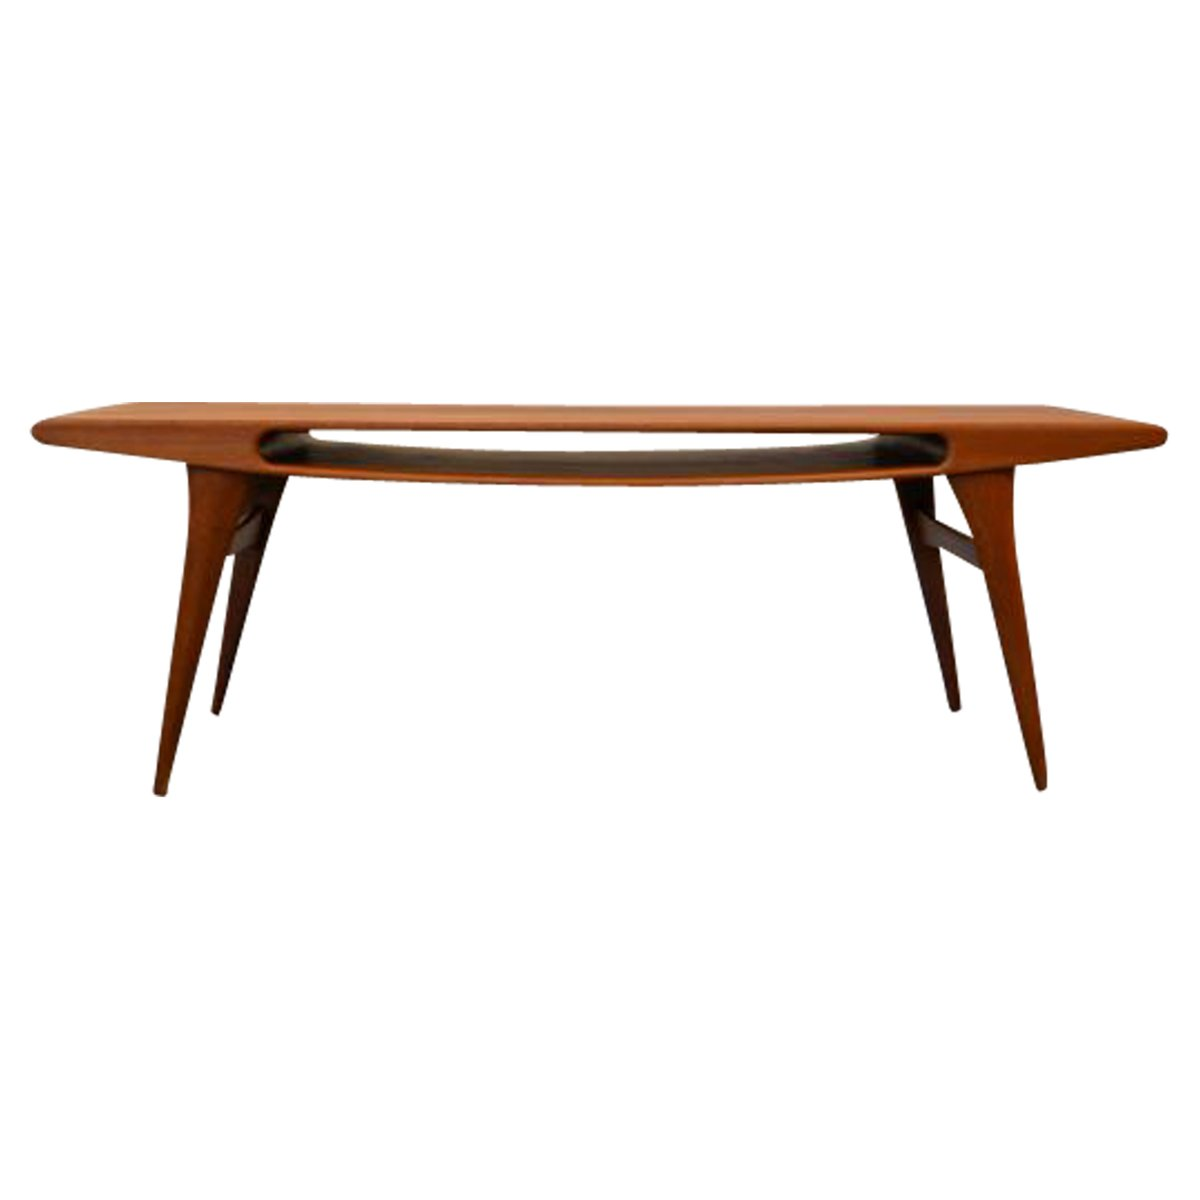 Vintage Danish Teak Coffee Table With Smile Opening For